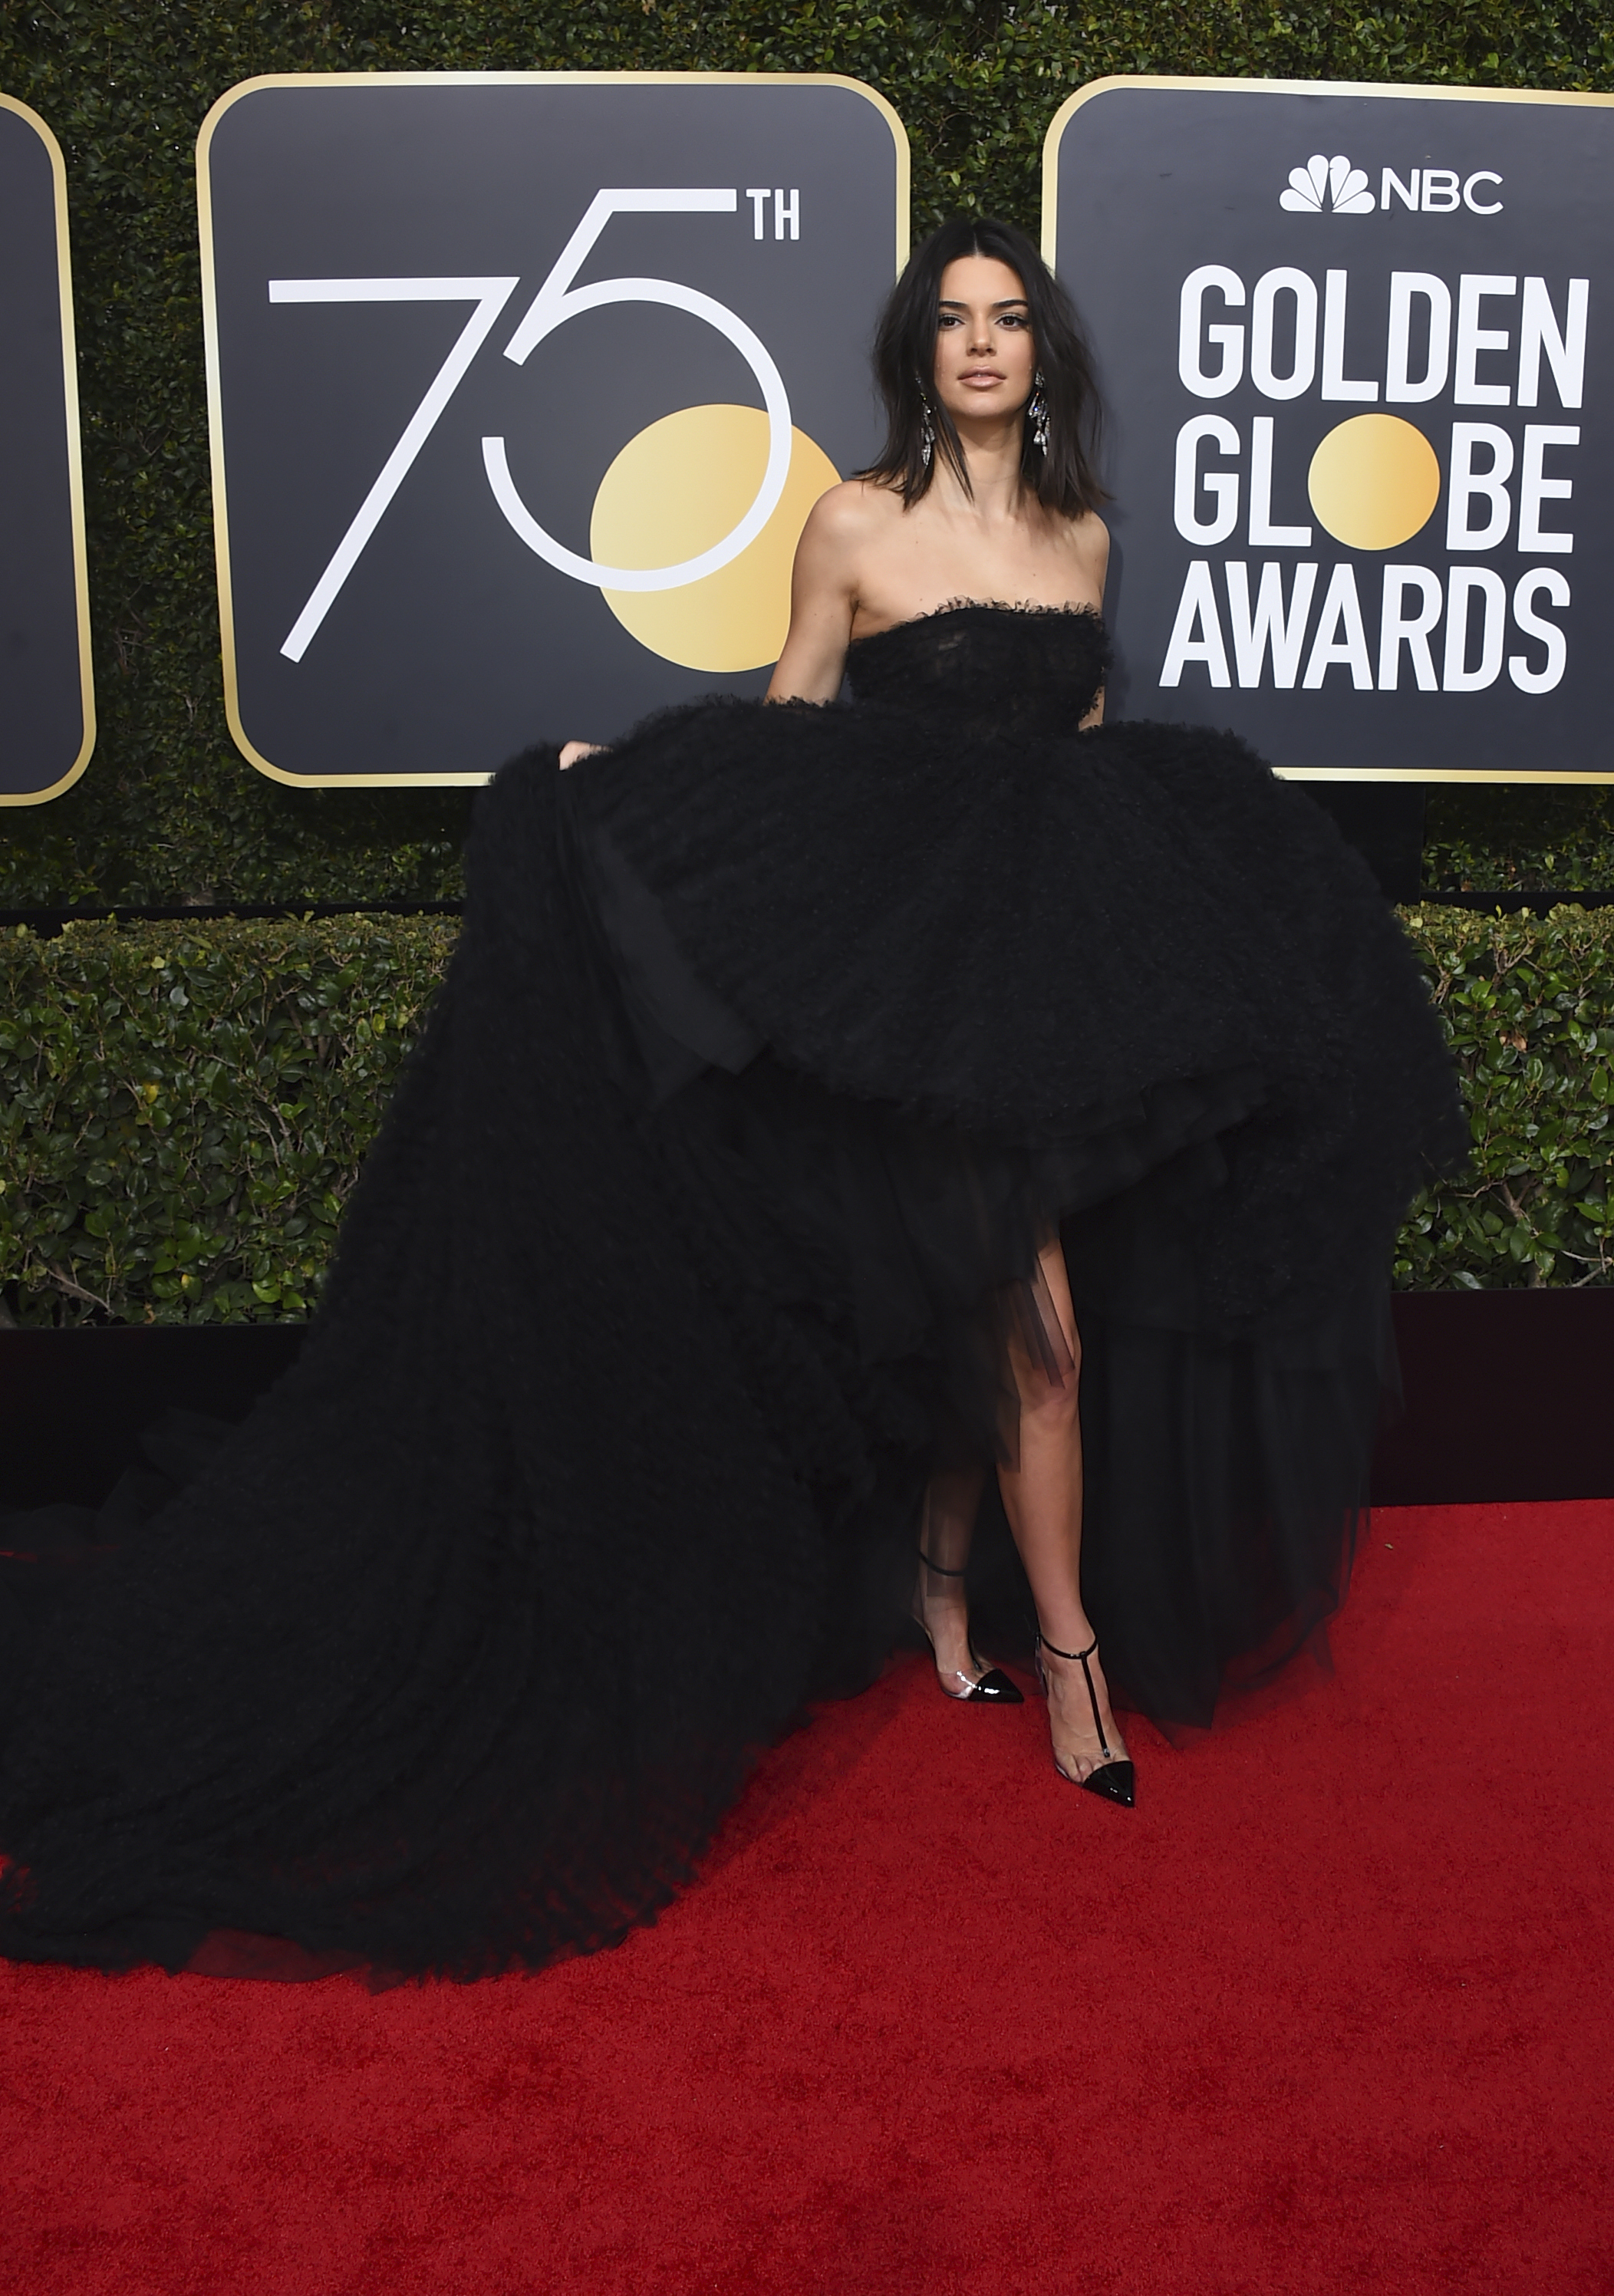 <div class='meta'><div class='origin-logo' data-origin='AP'></div><span class='caption-text' data-credit='Jordan Strauss/Invision/AP'>Kendall Jenner arrives at the 75th annual Golden Globe Awards at the Beverly Hilton Hotel on Sunday, Jan. 7, 2018, in Beverly Hills, Calif.</span></div>